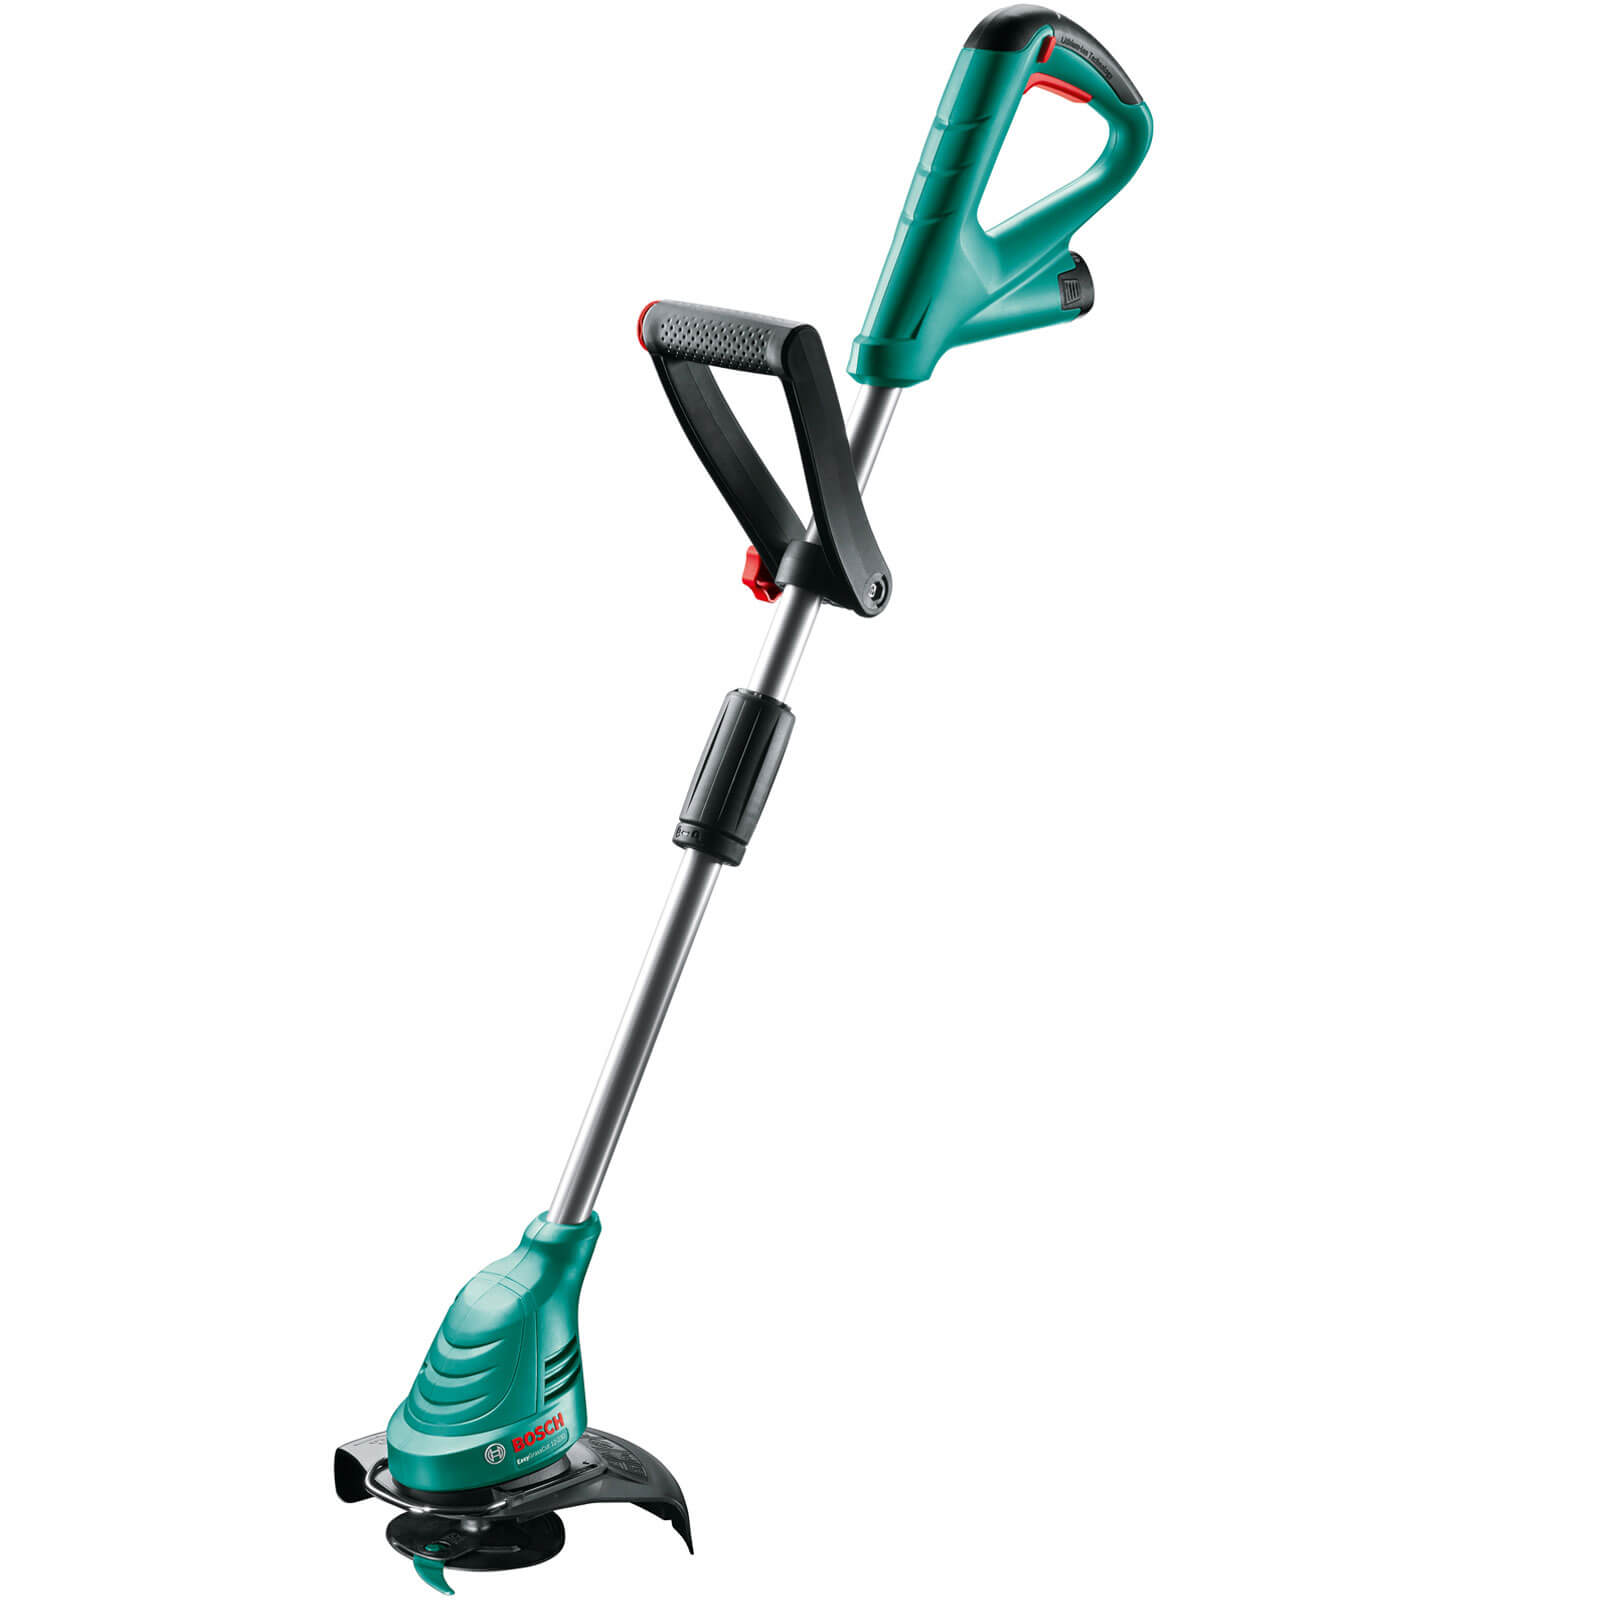 Image of Bosch EASYGRASSCUT 12-230 12v Cordless Grass Trimmer 230mm 1 x 2ah Li-ion Charger